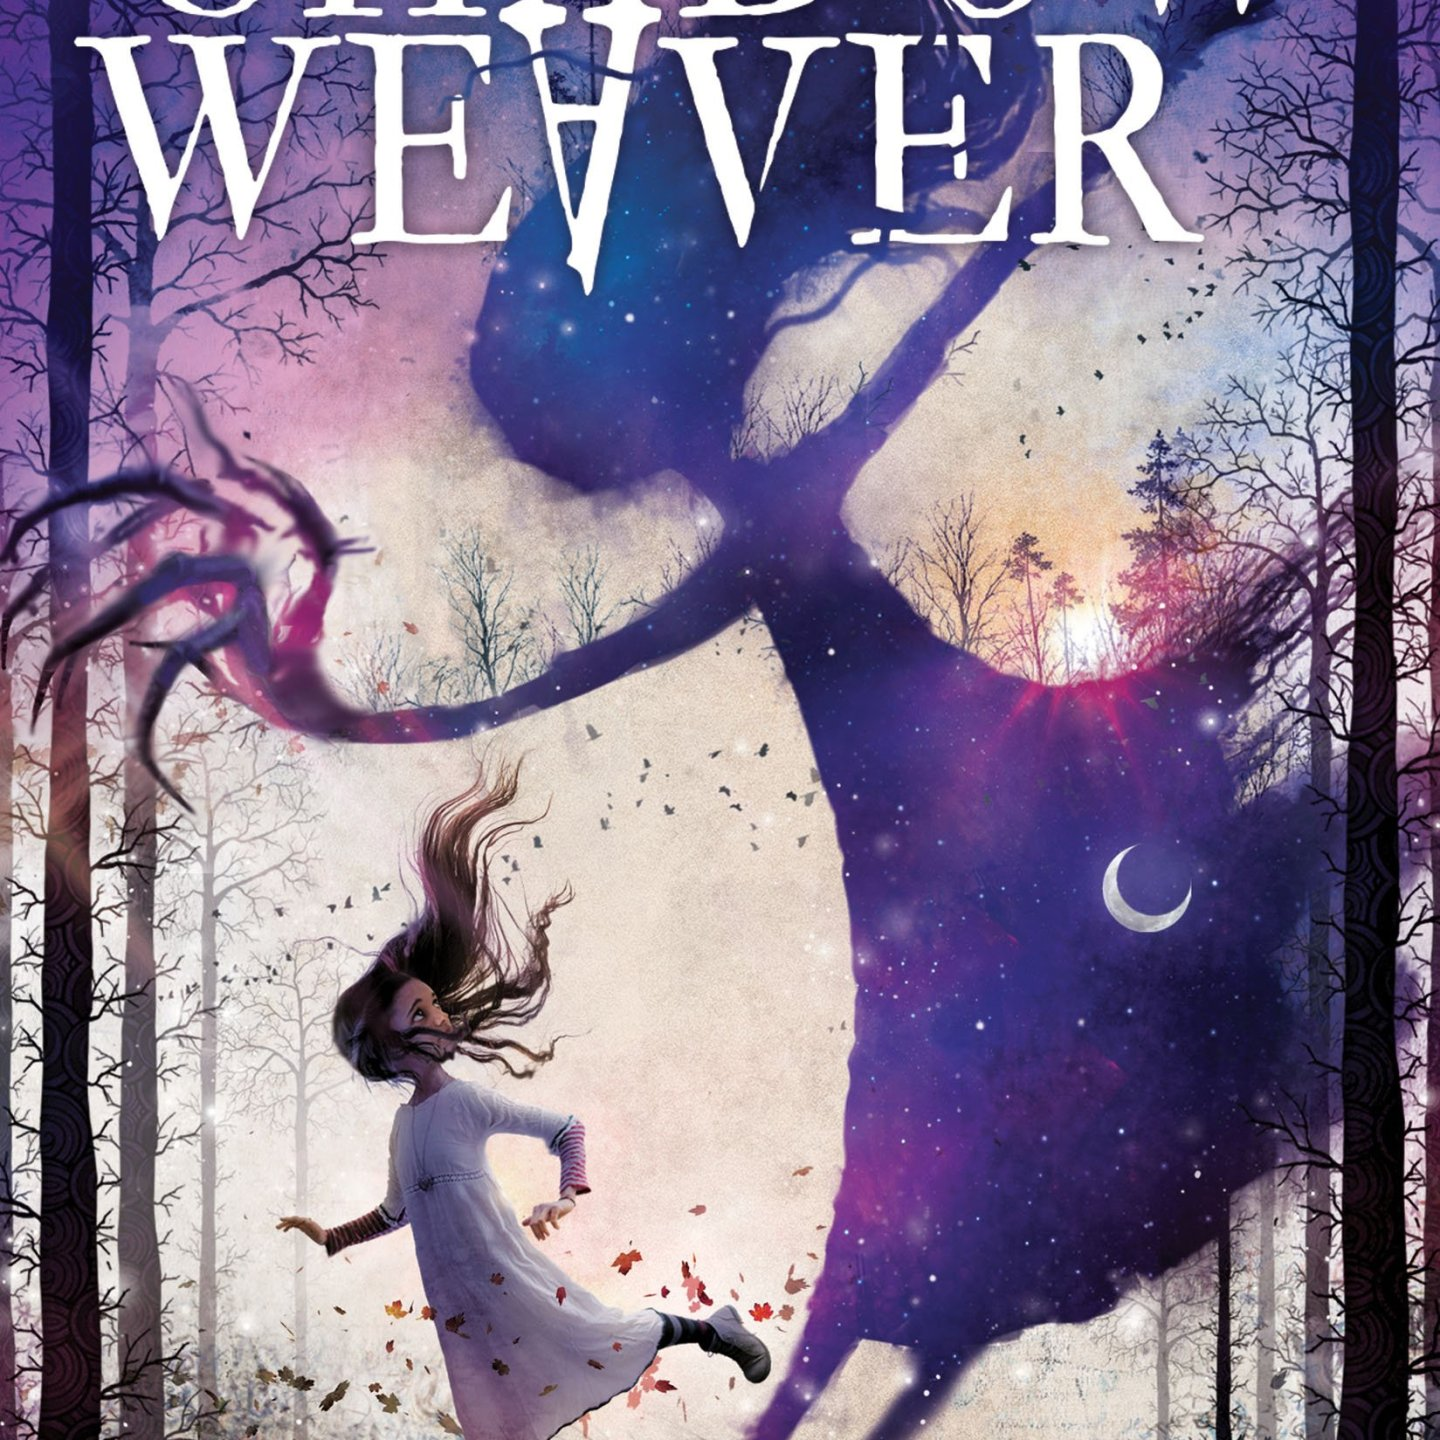 Shadow Weaver, by MarcyKate Connolly